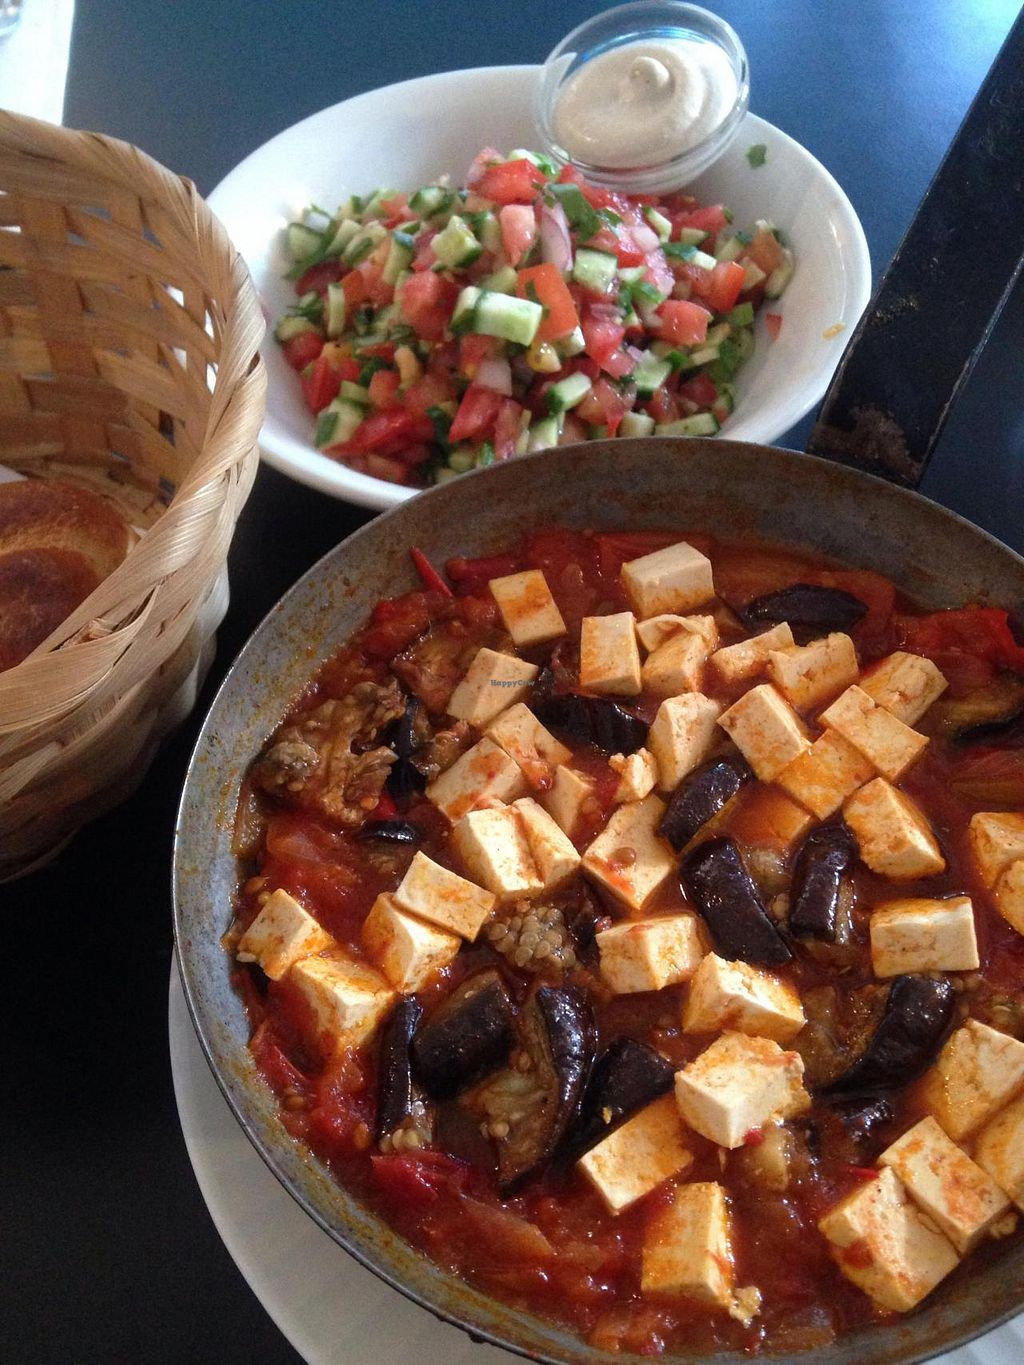 "Photo of CLOSED: Cafe Nini  by <a href=""/members/profile/Brok%20O.%20Lee"">Brok O. Lee</a> <br/>Vegan tofu and eggplant shakshouka <br/> November 1, 2014  - <a href='/contact/abuse/image/48042/84325'>Report</a>"